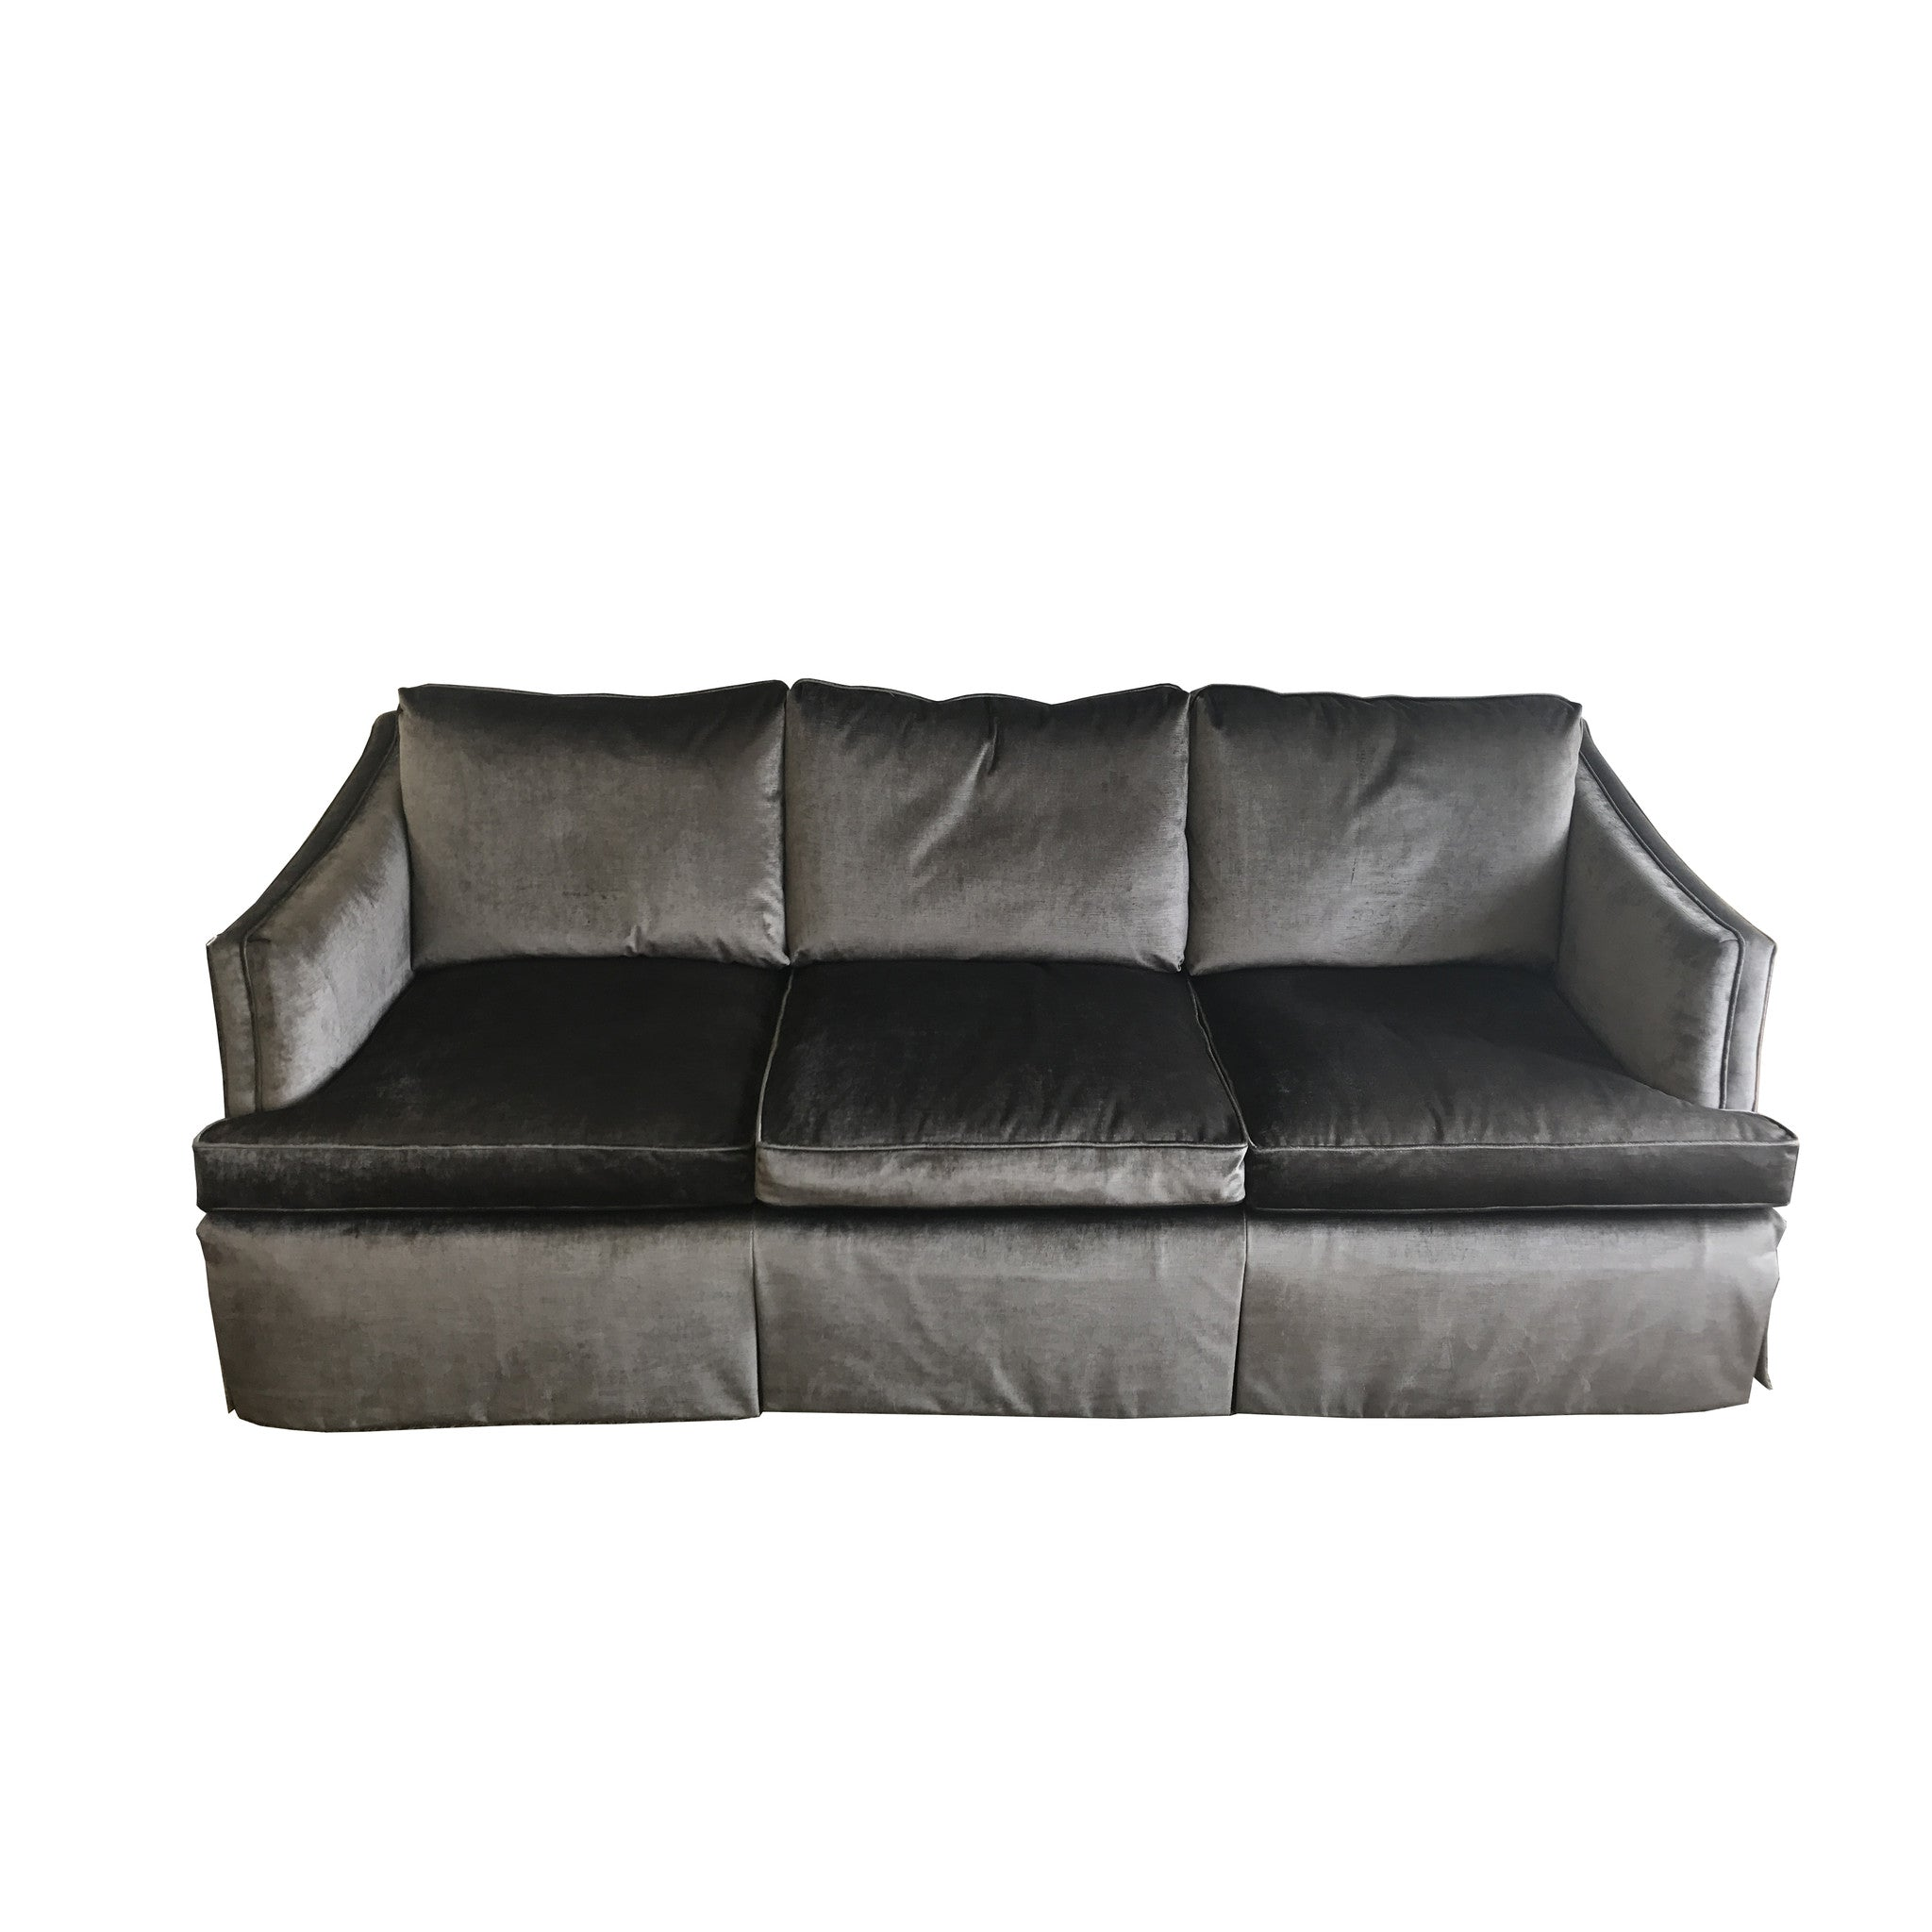 Sofas Daybeds Park Eighth